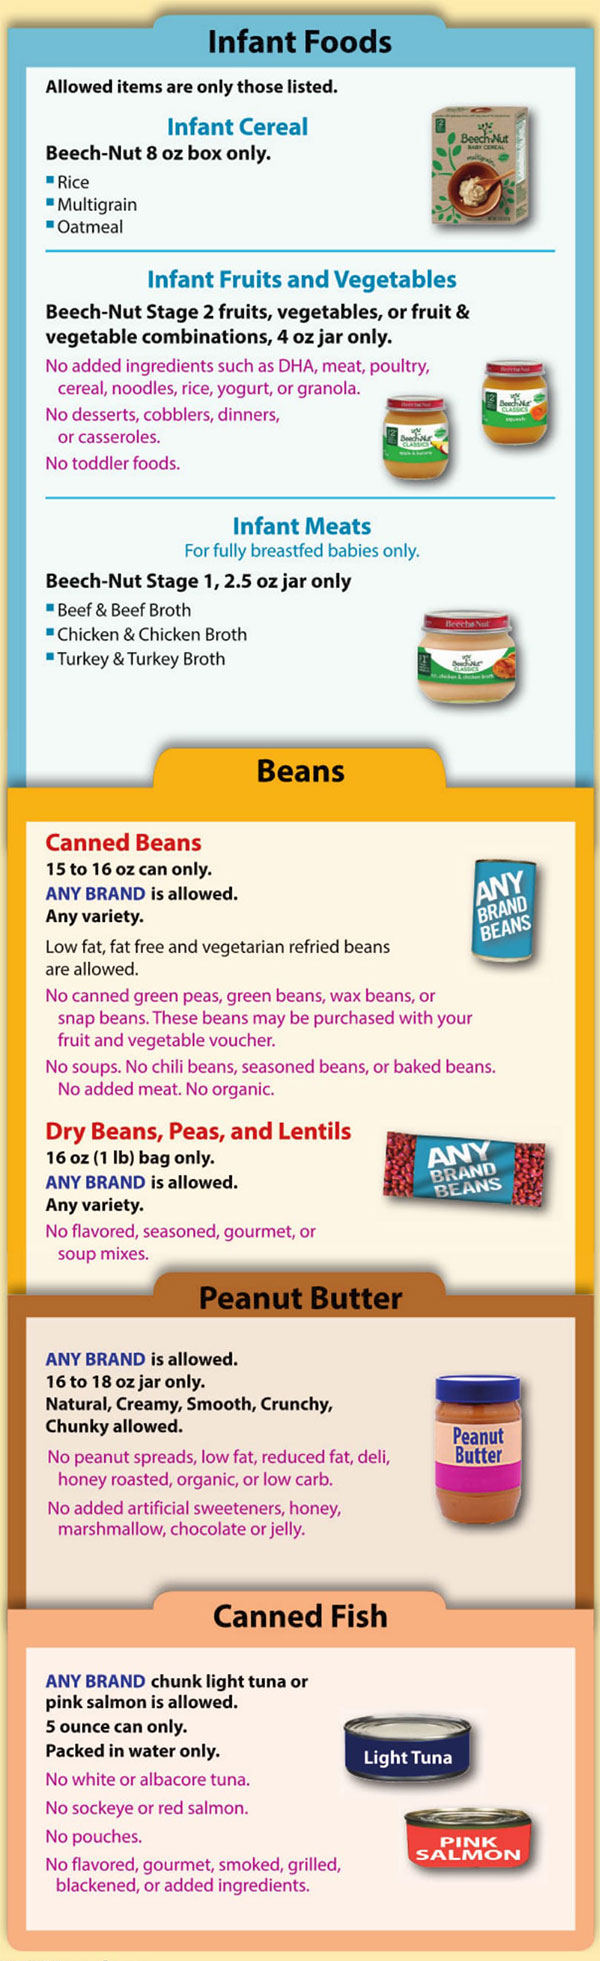 New Hampshire WIC Food List Infant Foods, Beans, Peanut Butter and Canned Fish